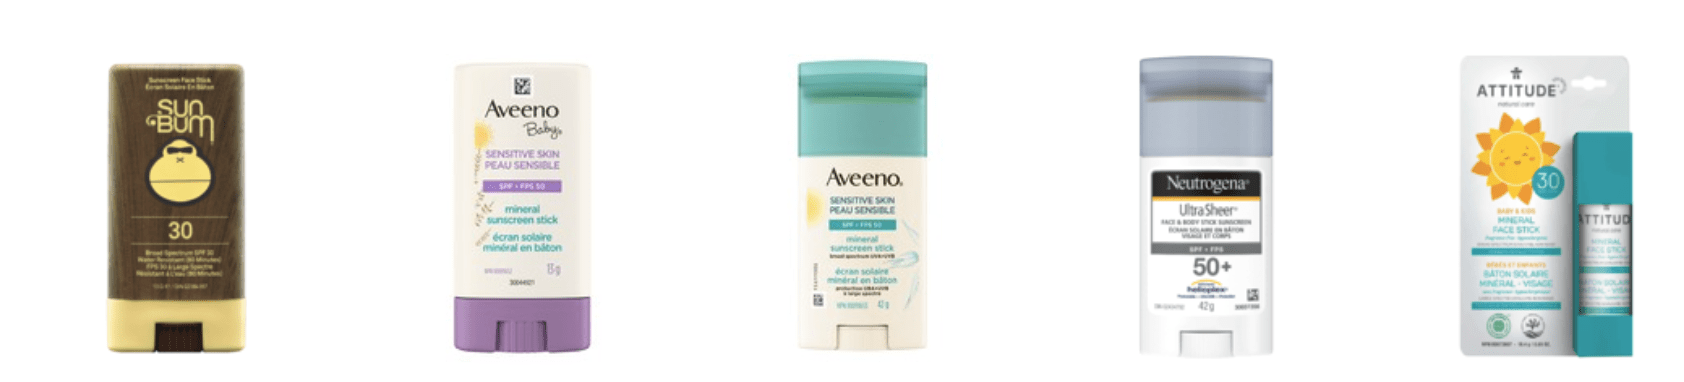 solid beauty products sunscreen